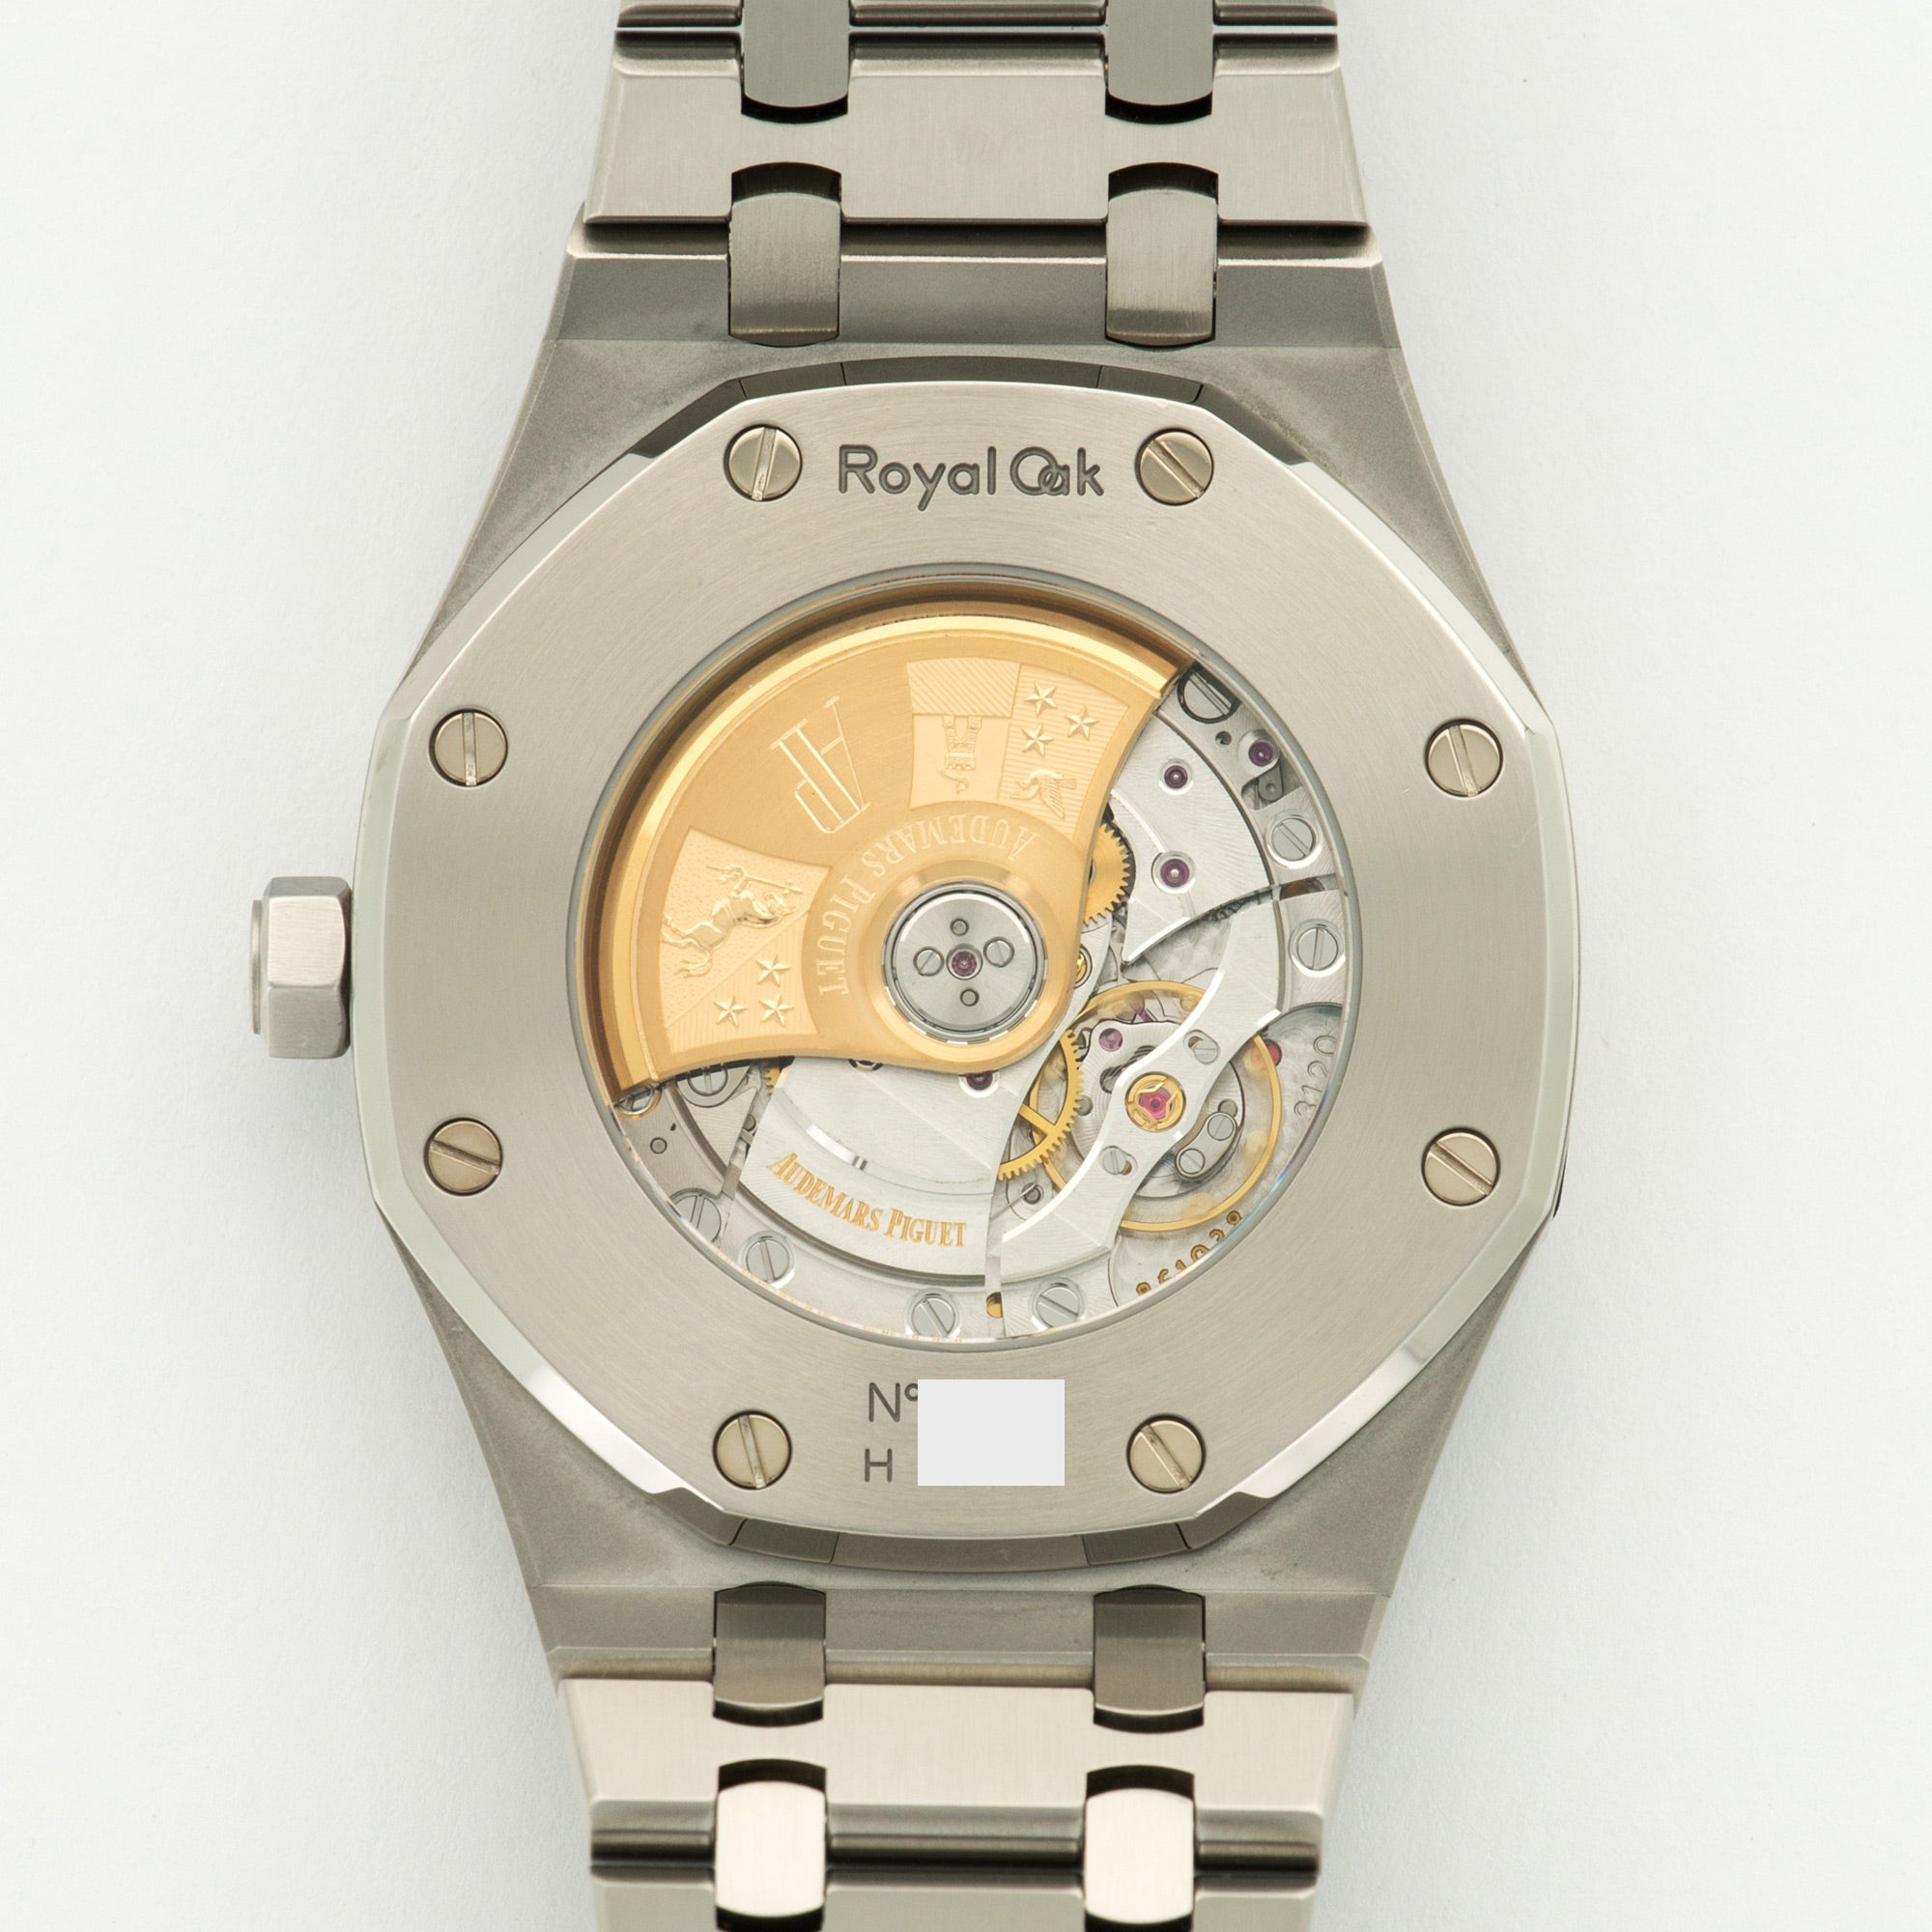 Audemars Piguet Royal Oak 15400ST.OO.1220ST.02 Steel  Likely Never Polished, Original Finish Gents Steel Silver 41mm Automatic 2013 Stainless Steel Bracelet Original Box and Certificate